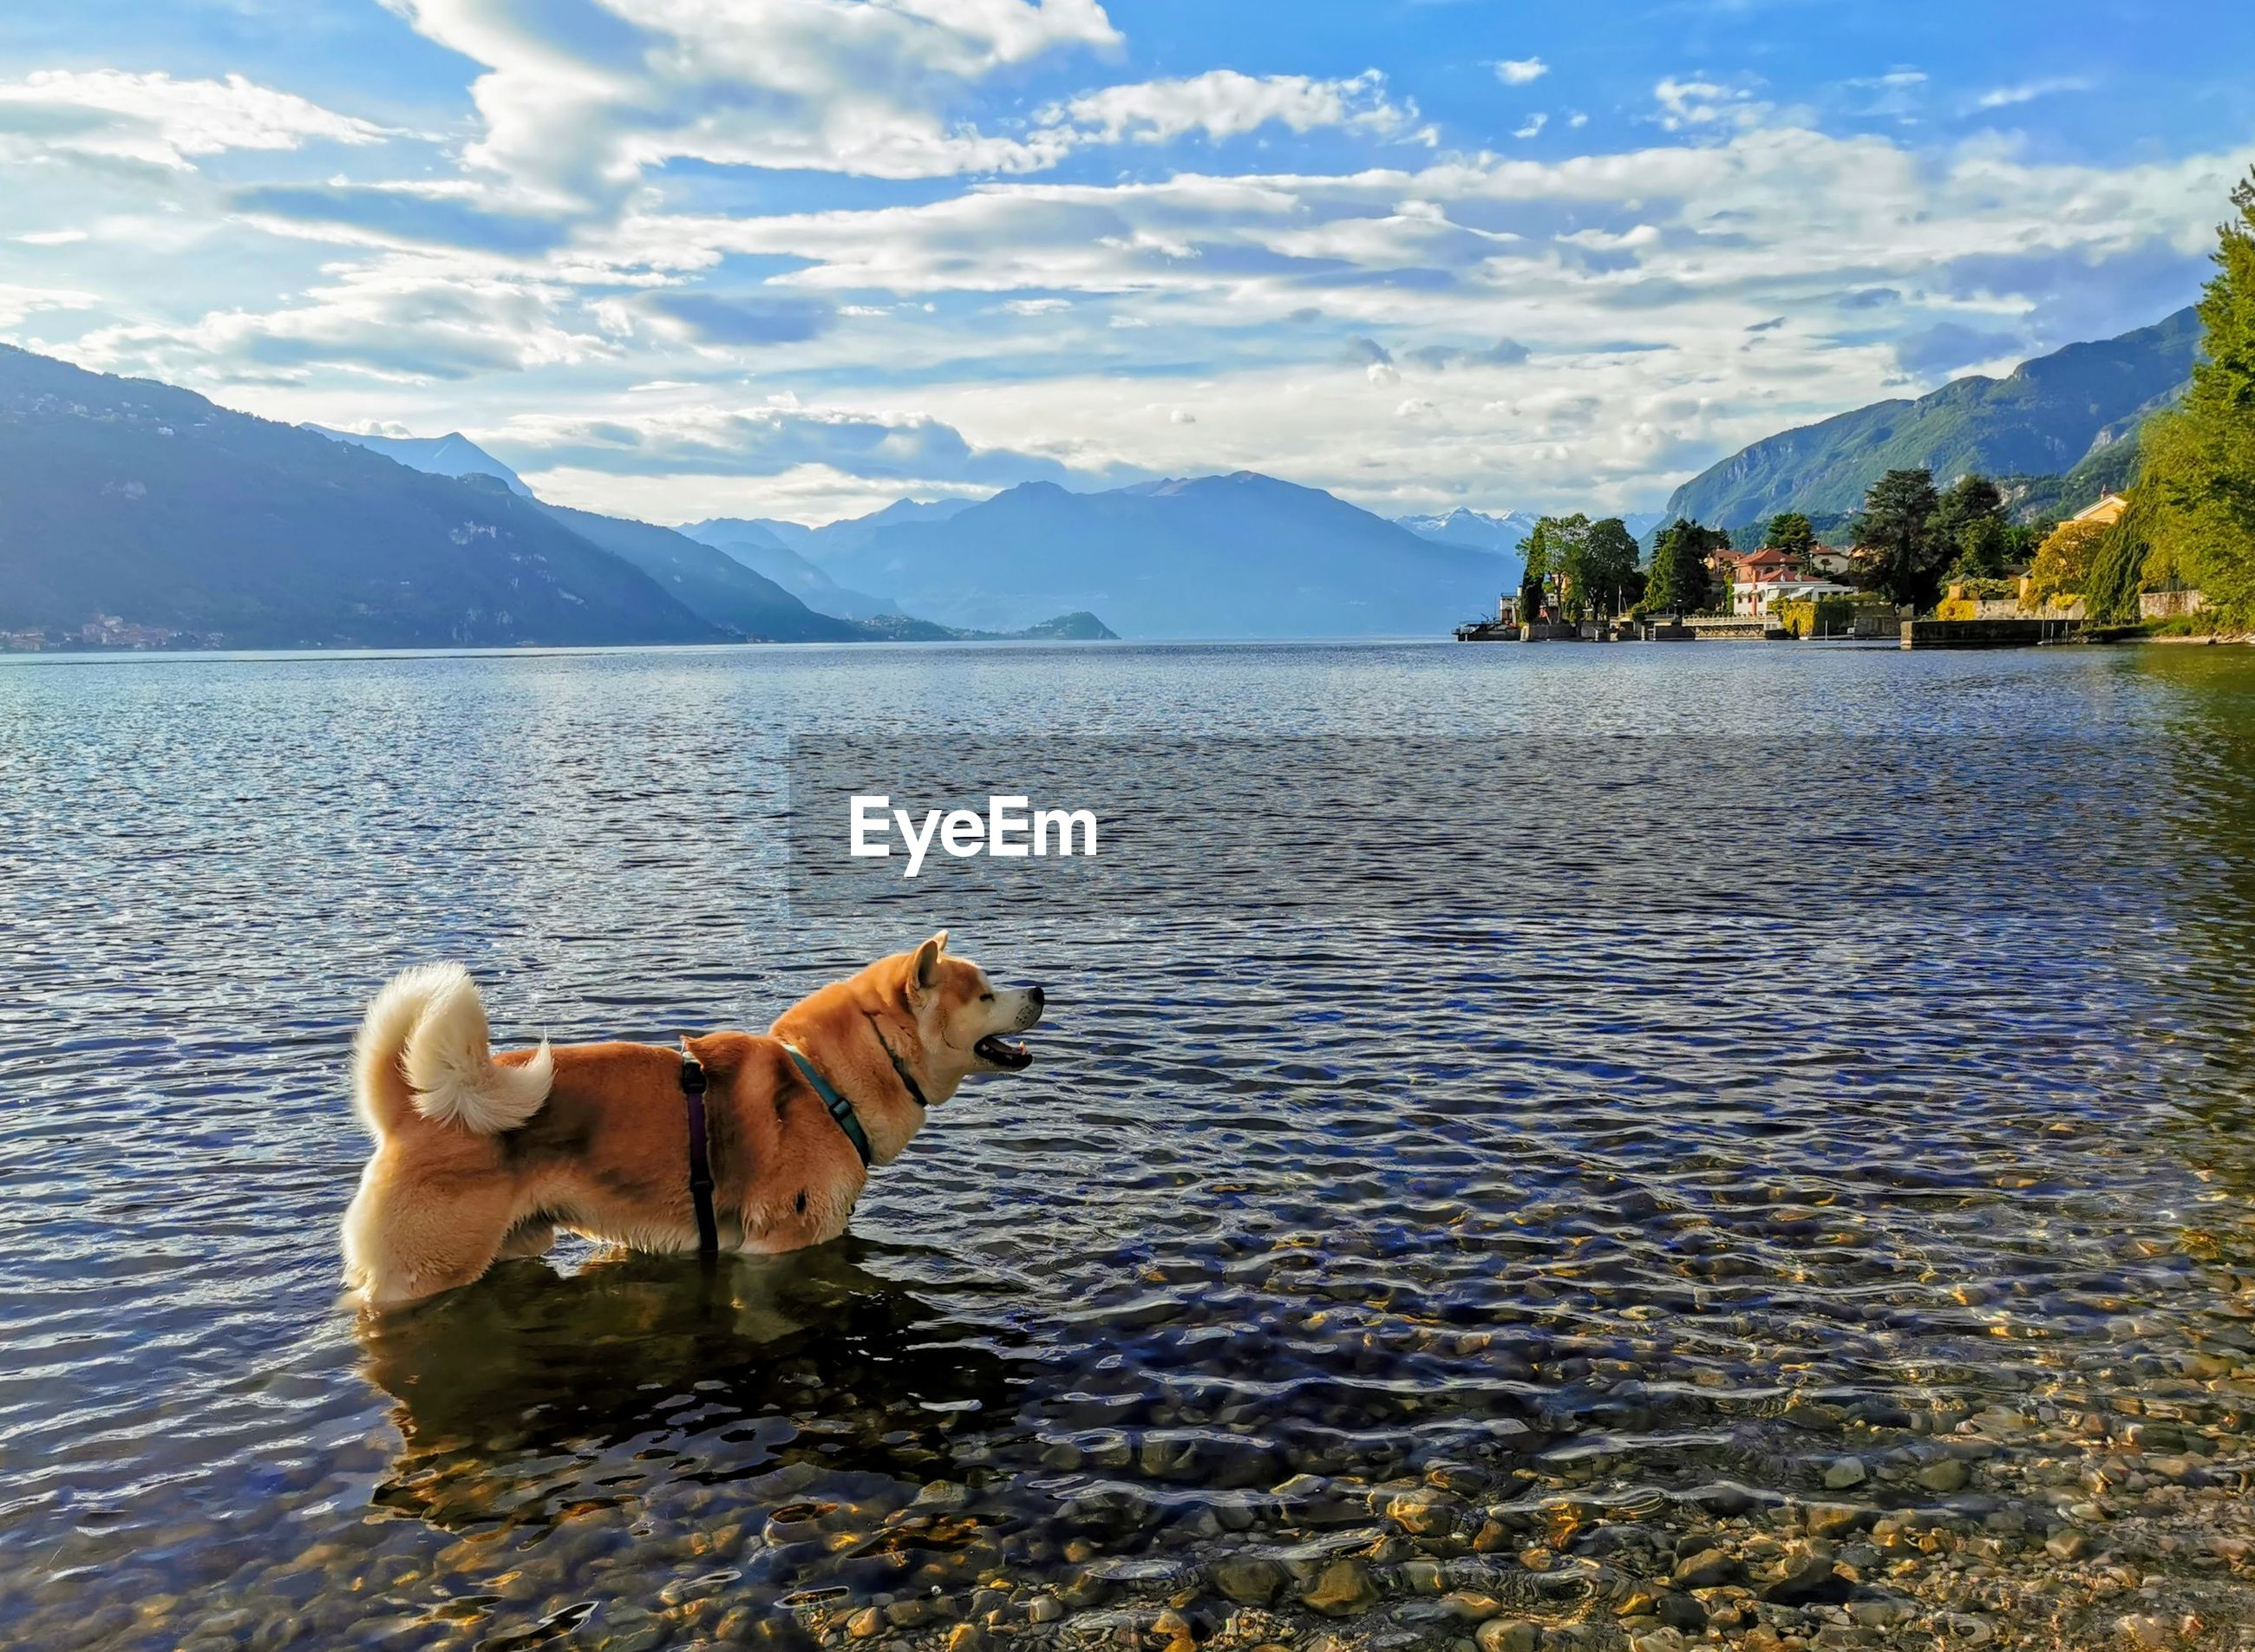 VIEW OF A DOG ON LAKE